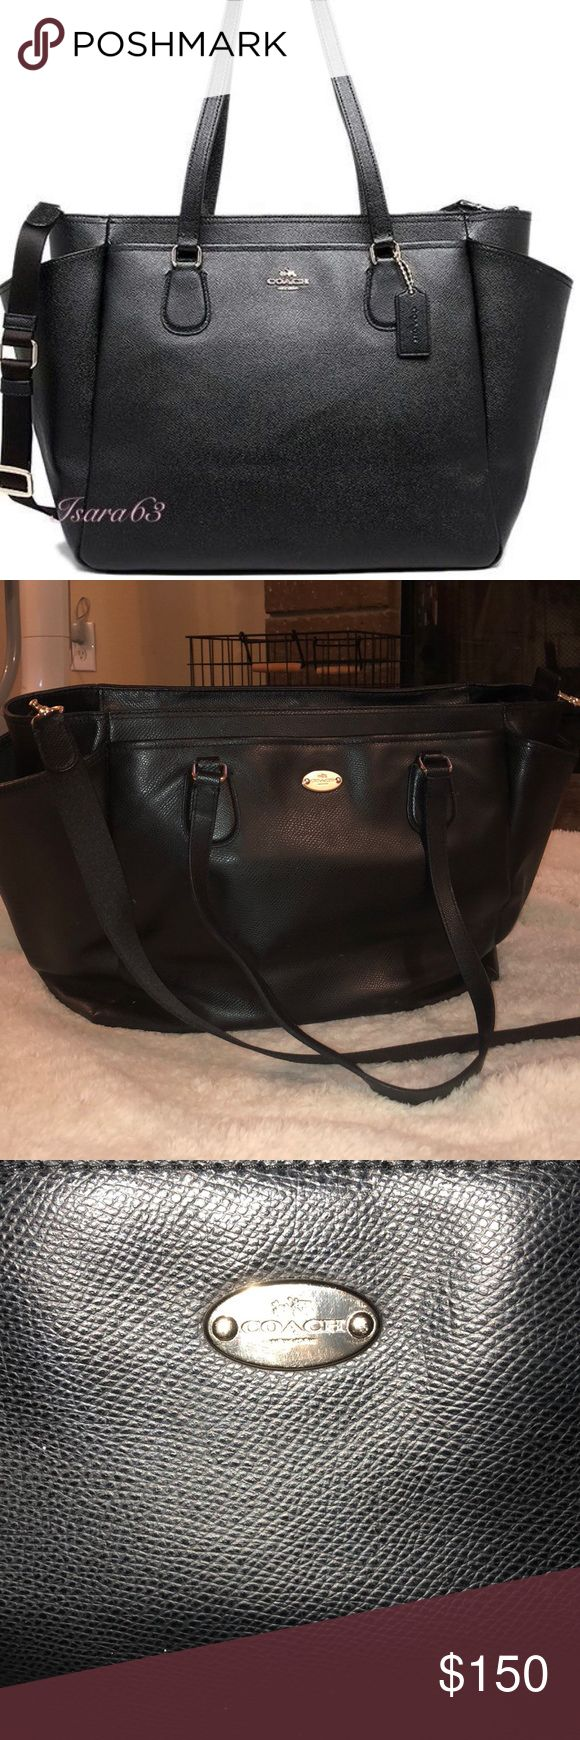 Coach Diaper bag Beautiful Black Leather Coach Diaper Bag  Used this with both my children but is just time for a change  Amazing quality  Slight wear but otherwise great condition Comes with original changing pad and care instructions Coach Bags Baby Bags